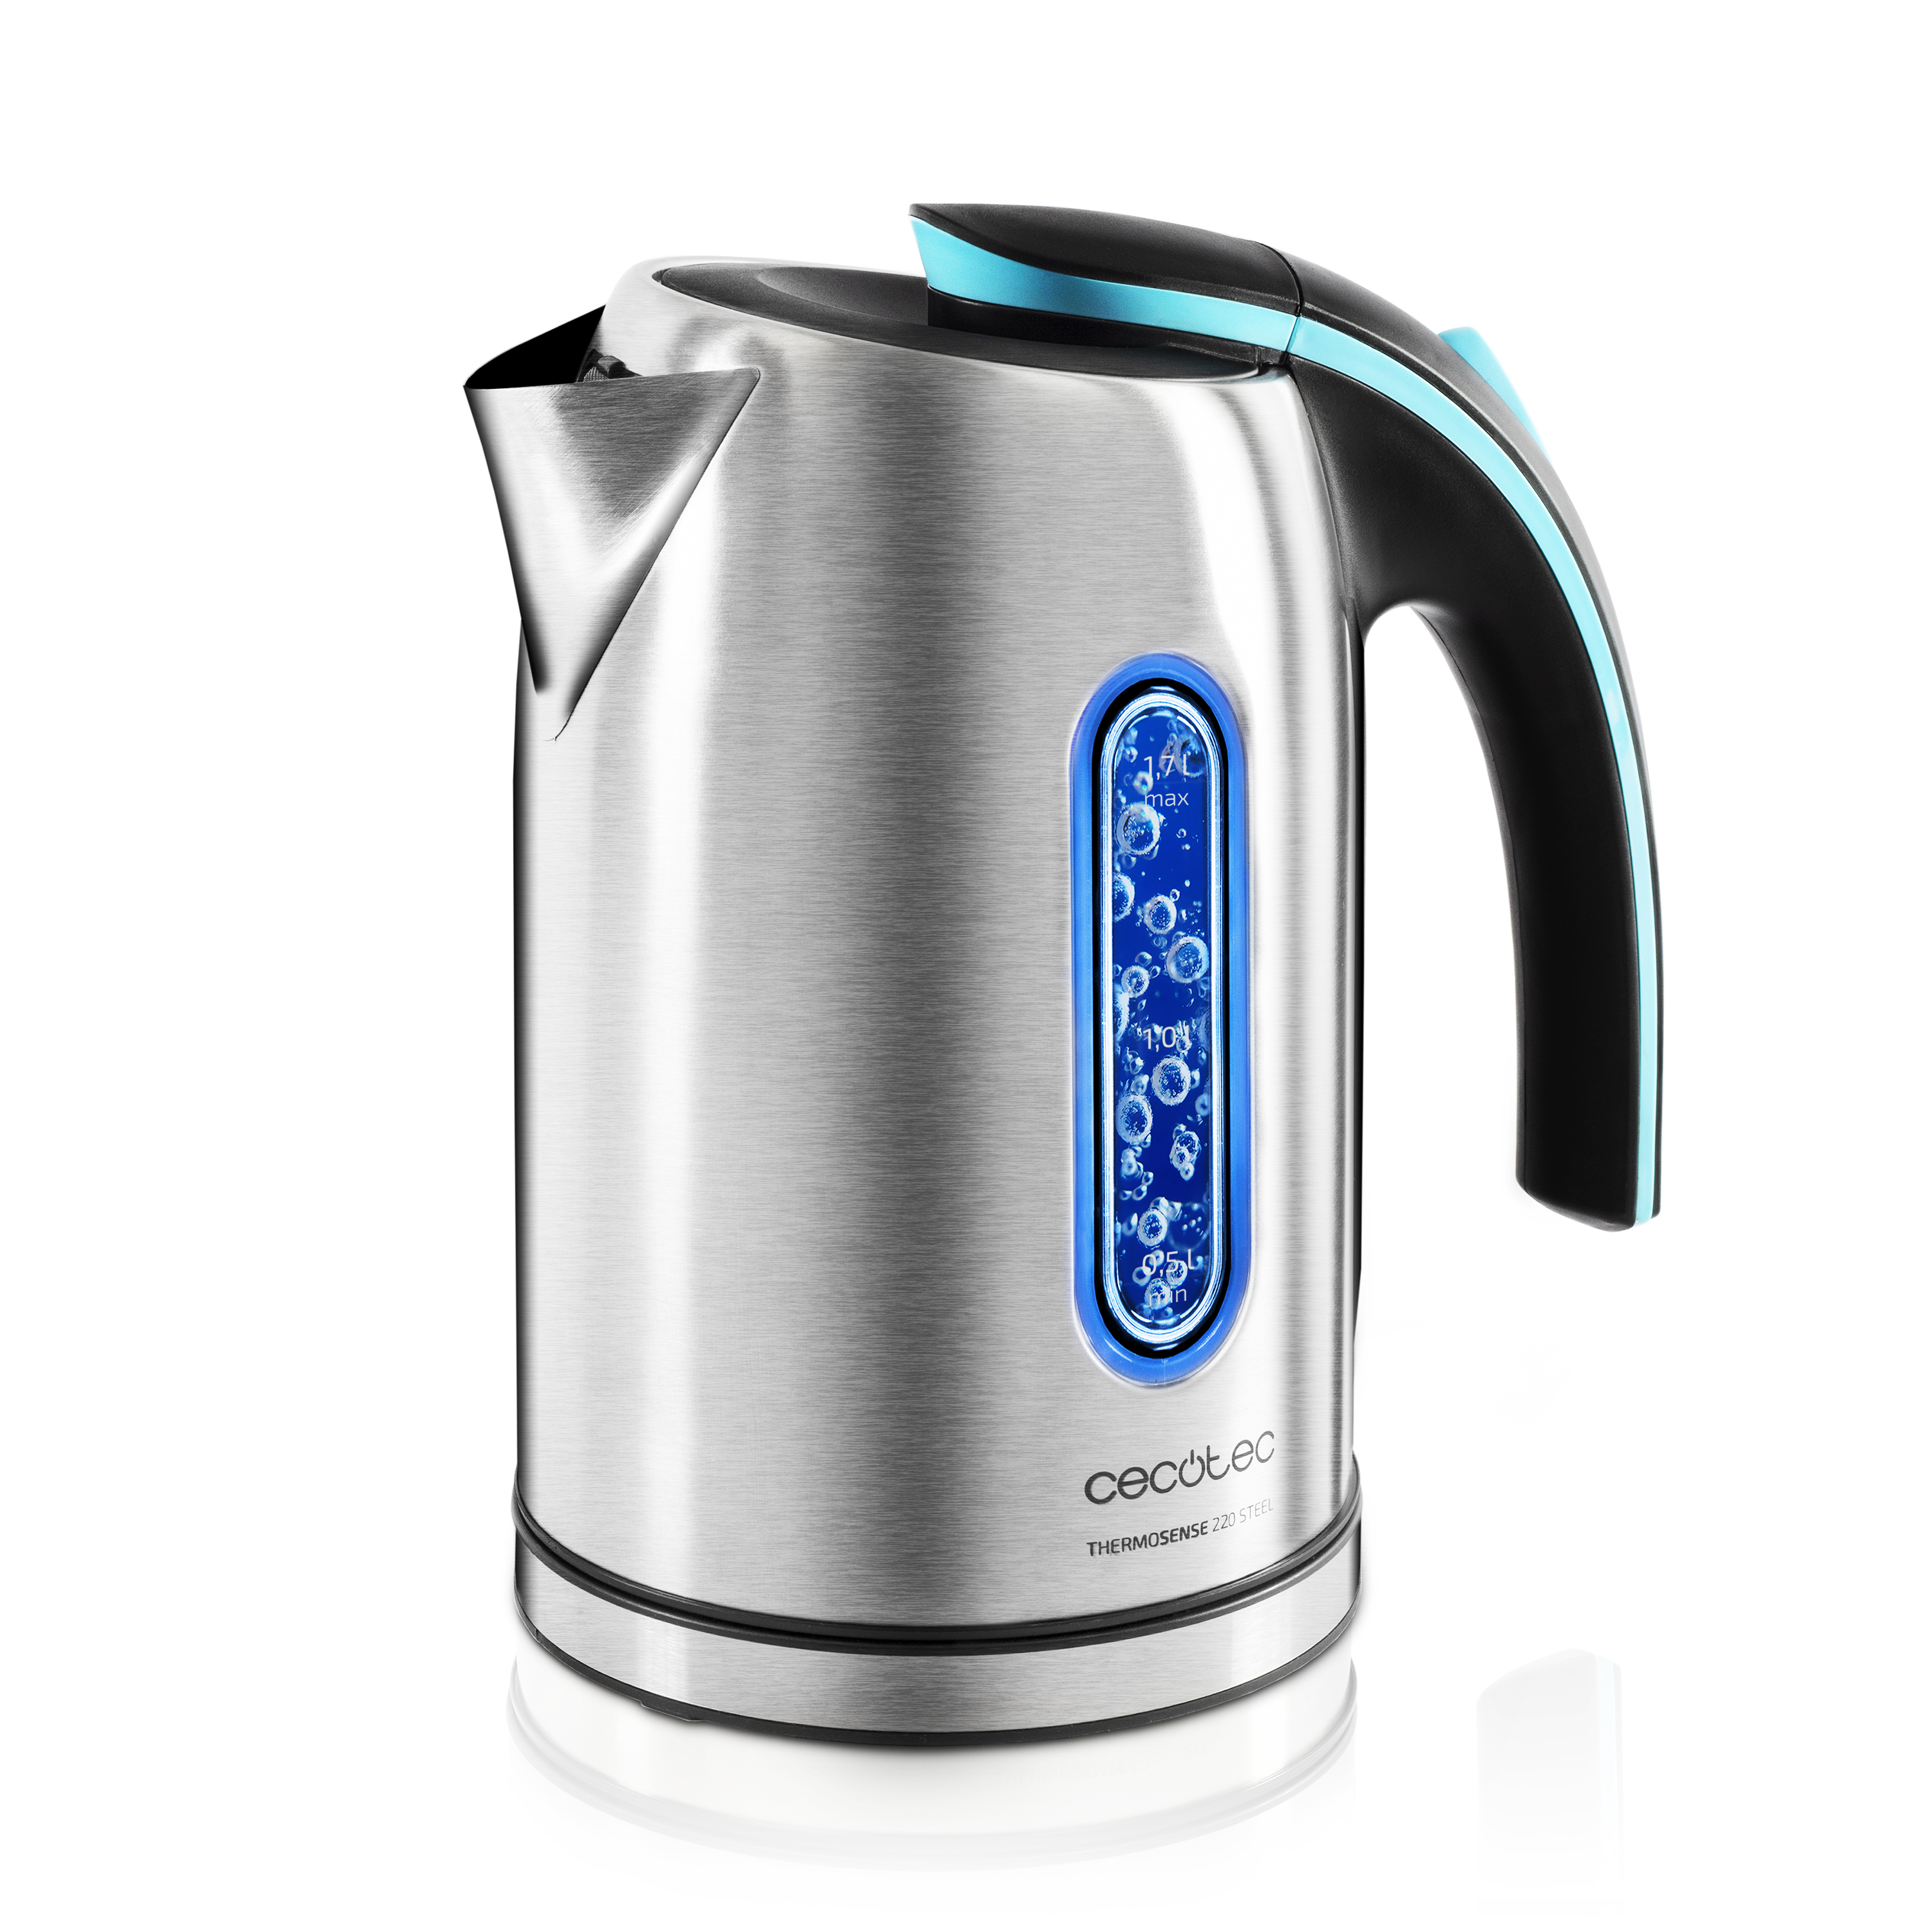 Cecotec Hervidor de Agua Thermo Sense 220 1.2L 1630W Electric Kettle Cup Heated Tea Heater Stainless Steel Brand Quality